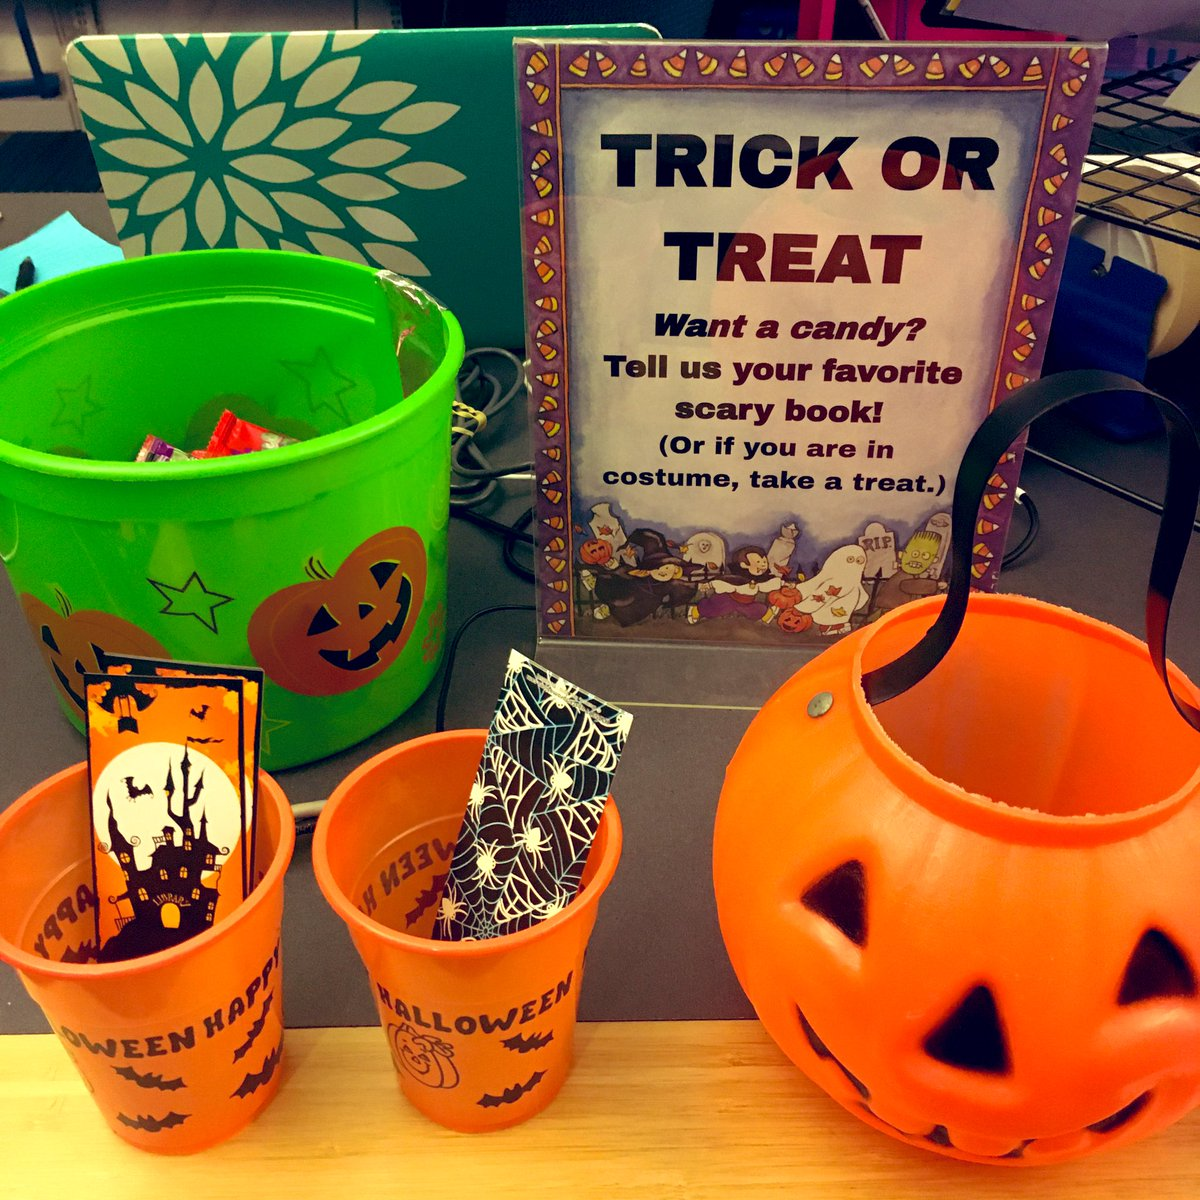 <a target='_blank' href='http://search.twitter.com/search?q=trickortreat'><a target='_blank' href='https://twitter.com/hashtag/trickortreat?src=hash'>#trickortreat</a></a> Want Candy? Tell us your favorite scary book! (Or if you are in costume, take a treat.) 🎃 <a target='_blank' href='http://twitter.com/Principal_YHS'>@Principal_YHS</a> <a target='_blank' href='http://twitter.com/YorktownHS'>@YorktownHS</a> <a target='_blank' href='http://twitter.com/YorktownAPs'>@YorktownAPs</a> <a target='_blank' href='http://twitter.com/YorktownSentry'>@YorktownSentry</a> <a target='_blank' href='http://twitter.com/APSLibrarians'>@APSLibrarians</a> <a target='_blank' href='https://t.co/9cubbIYVzL'>https://t.co/9cubbIYVzL</a>